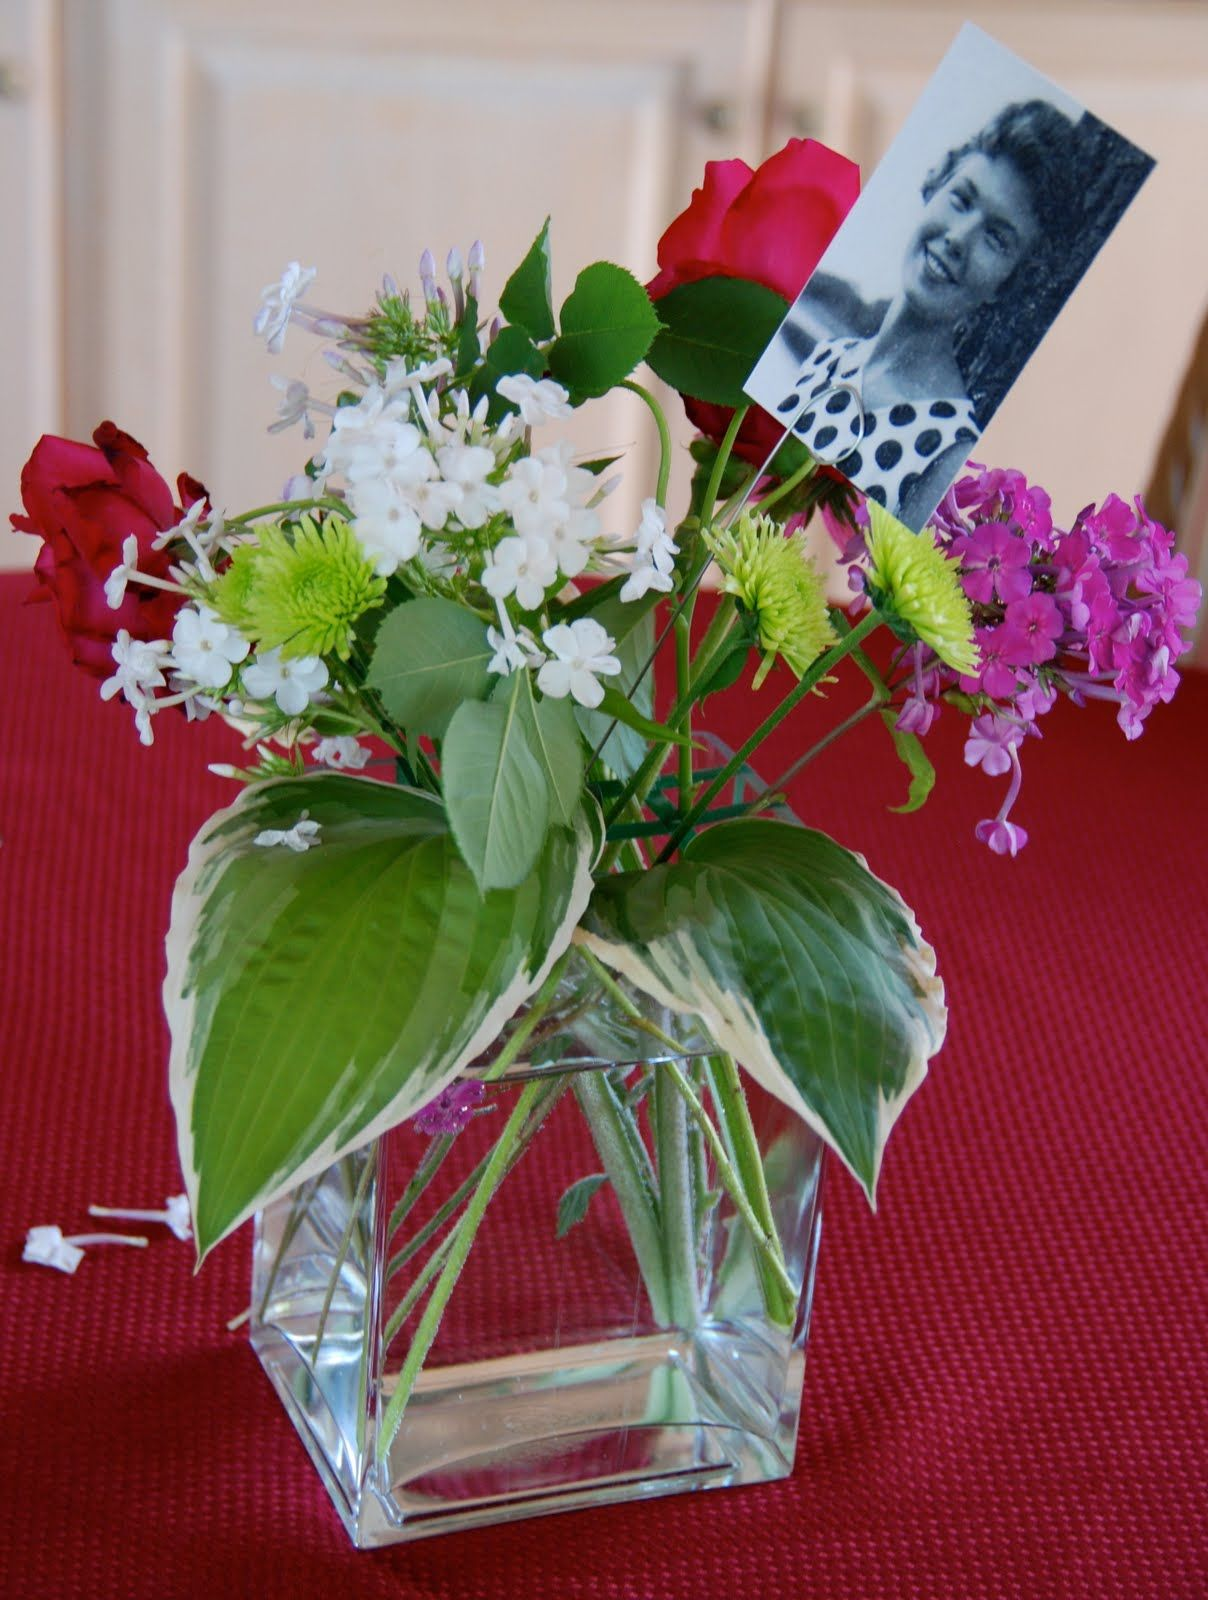 Centerpiece Ideas For 70th Birthday Centerpieces From Her